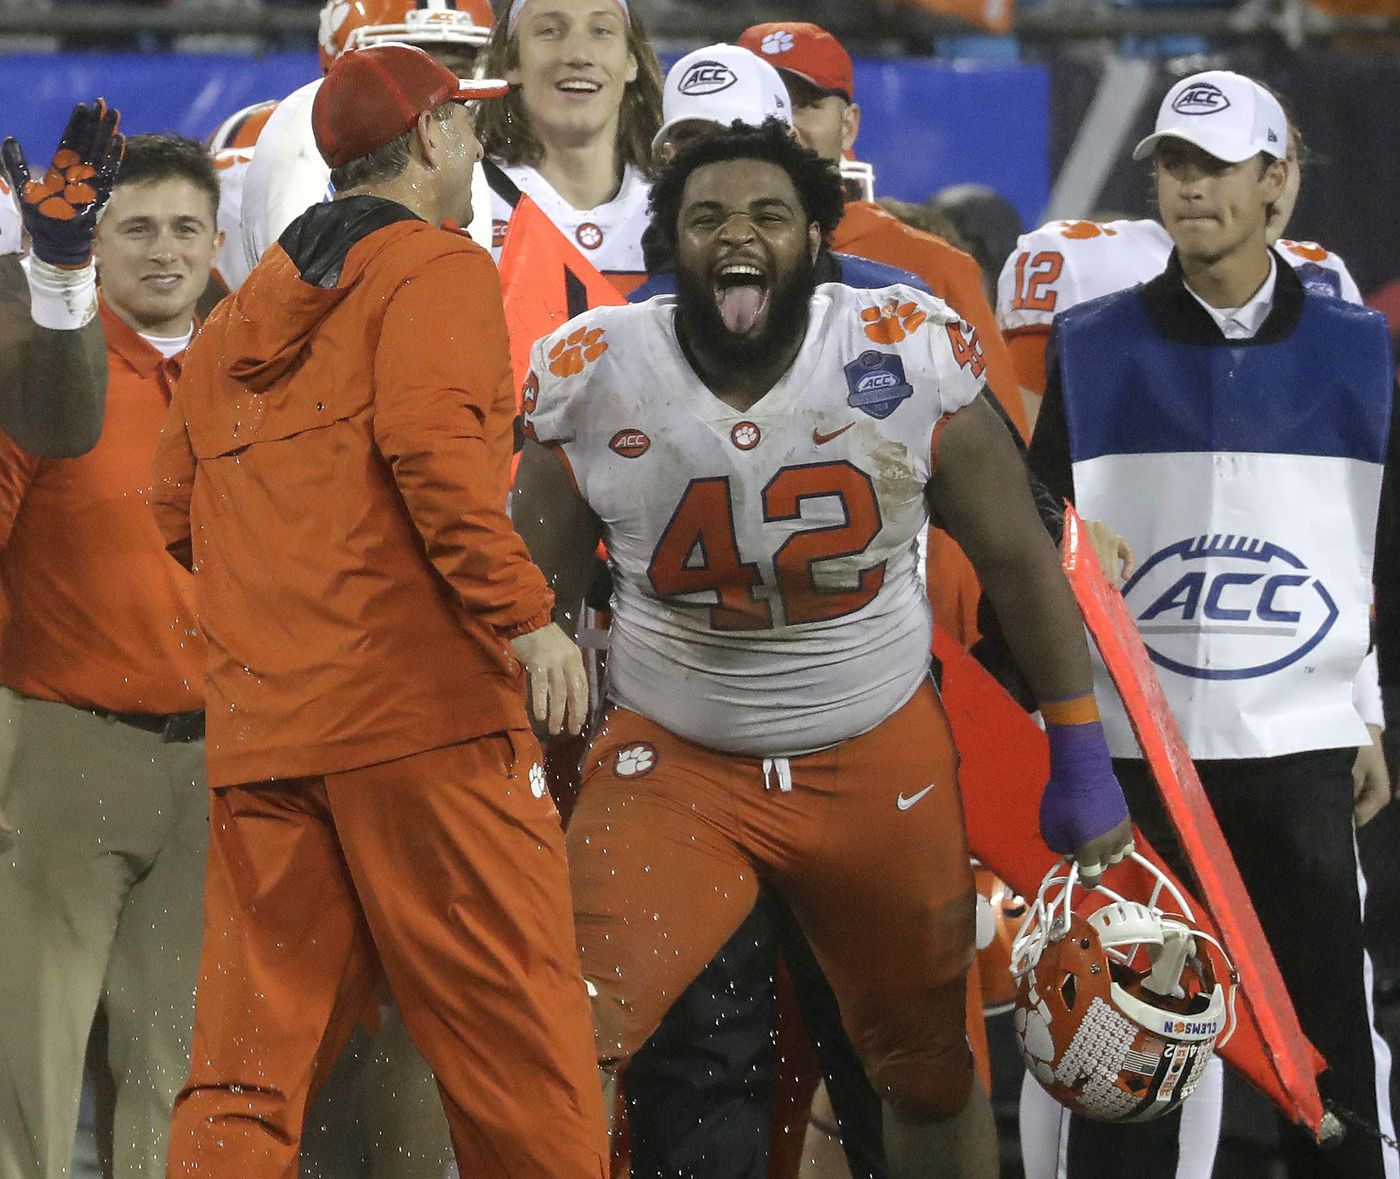 Clemson in 4th playoff draws Notre Dame in Cotton Bowl